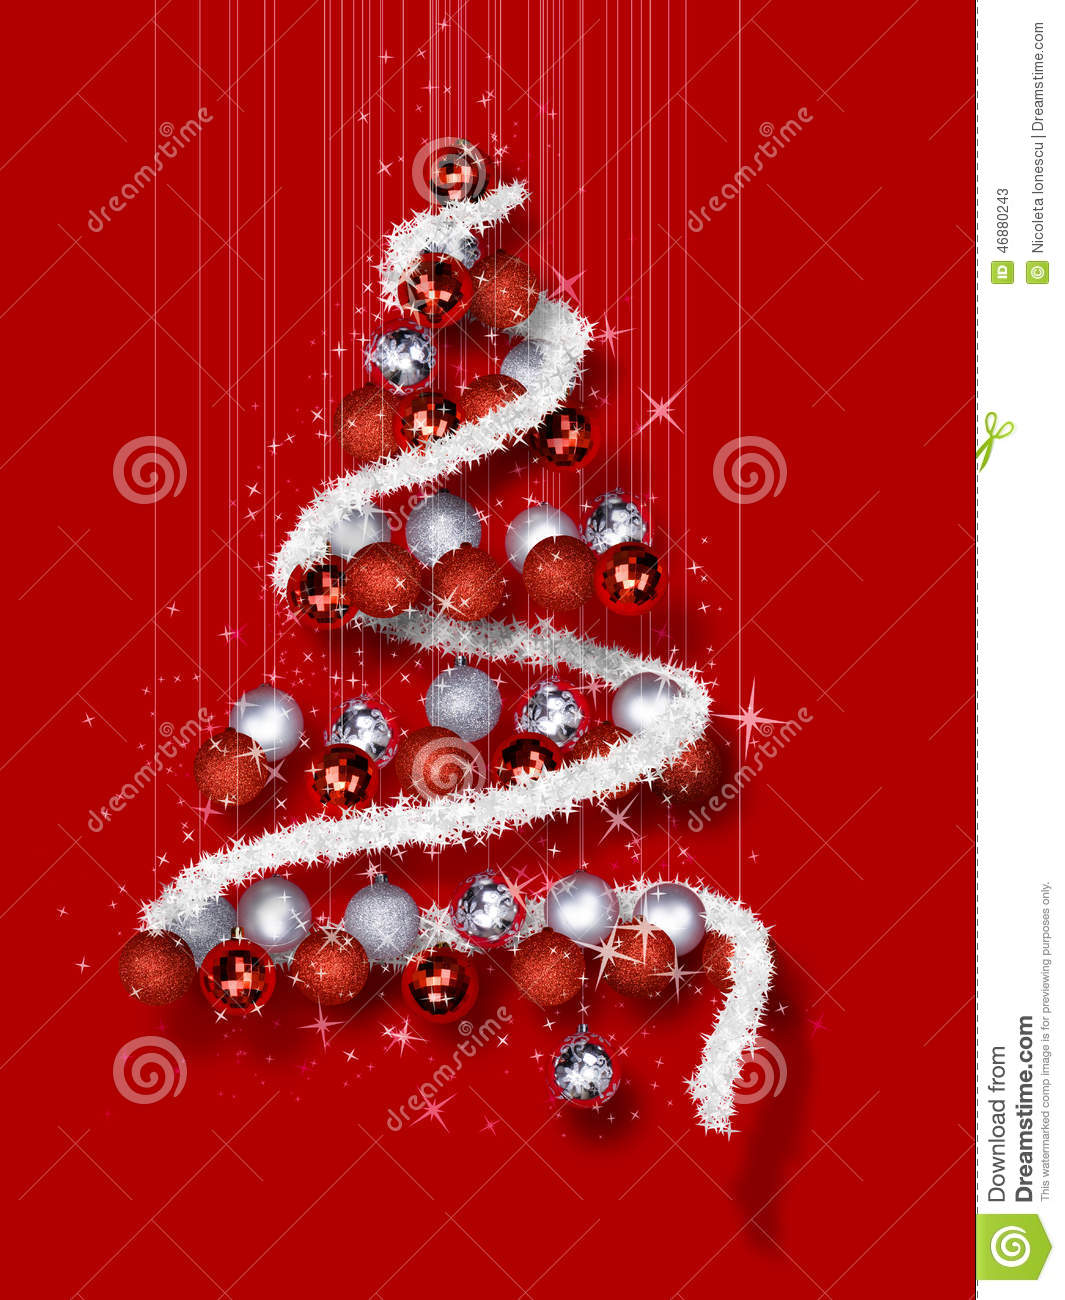 Download Christmas Tree Made Of Ornaments On Red Background Stock Image